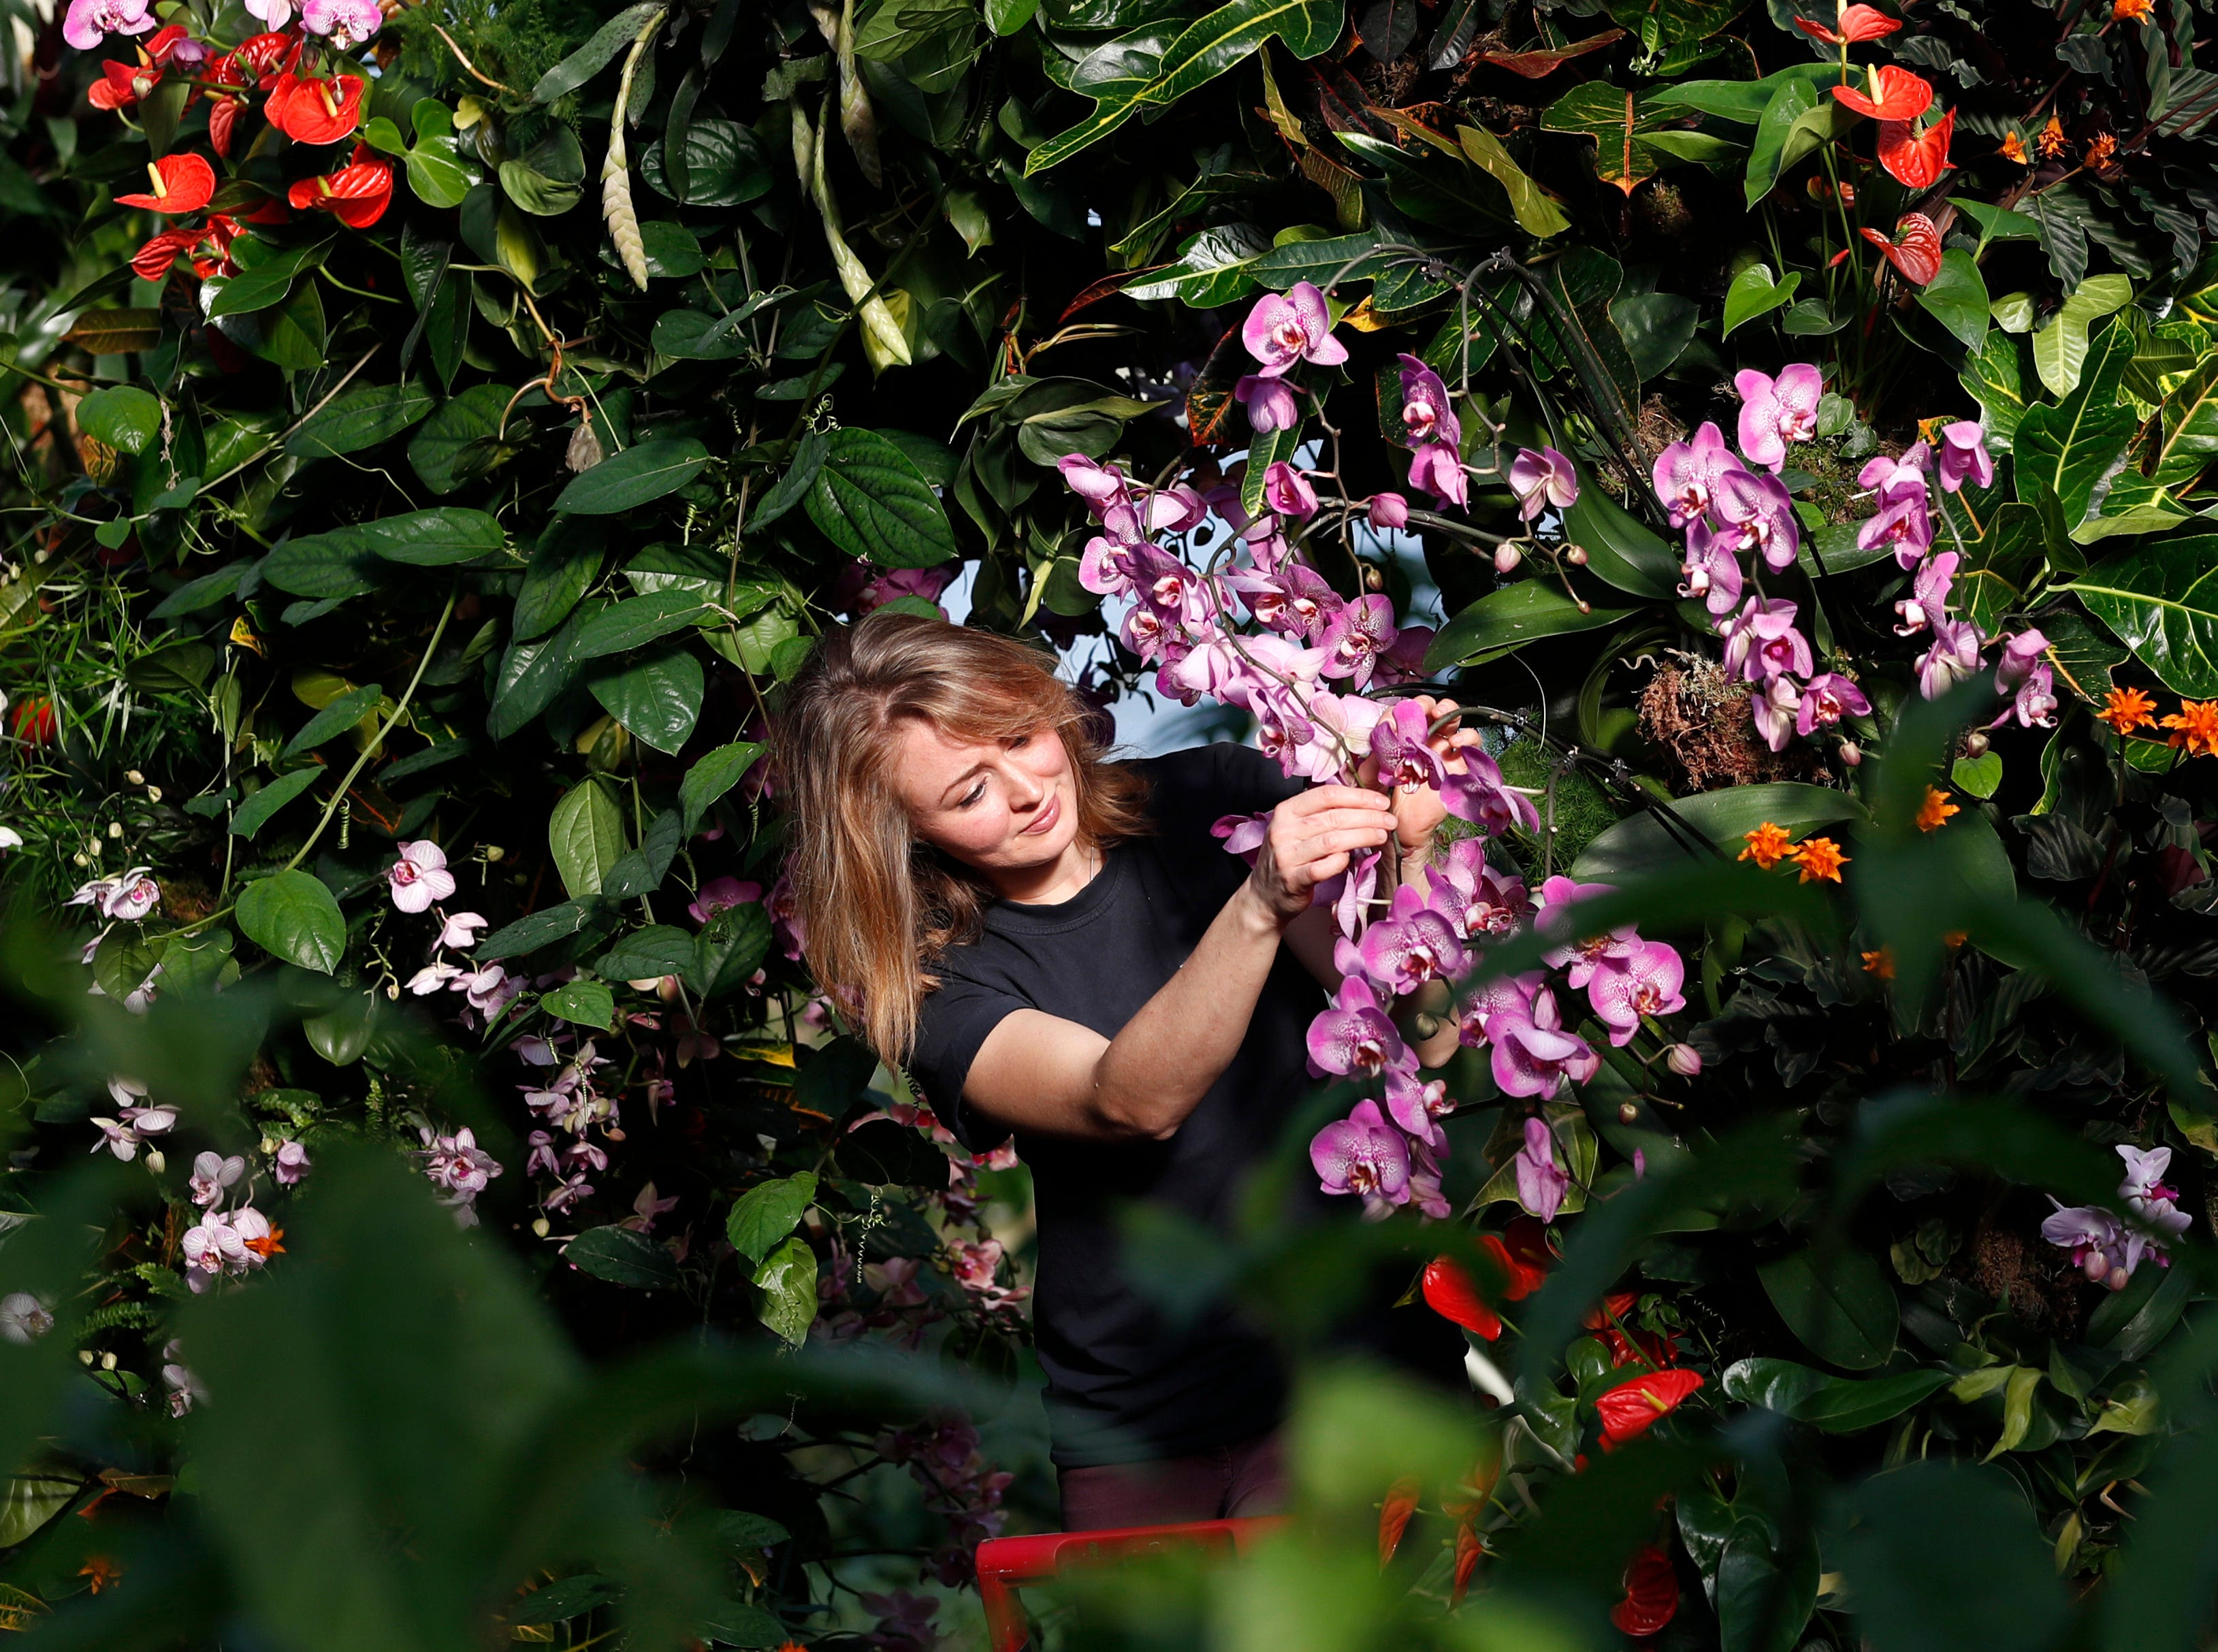 Hannah Button, a botanical horticulturist, attends to a display of orchids at the Kew Gardens Orchid Festival during a press preview in London, Thursday, Feb. 7, 2019. The display of some 6,200 orchids took 30 days to complete, with the central display showing off the biodiversity of Colombia which is home to more species of orchid than anywhere else in the world. The display opens to the public on Feb. 9.